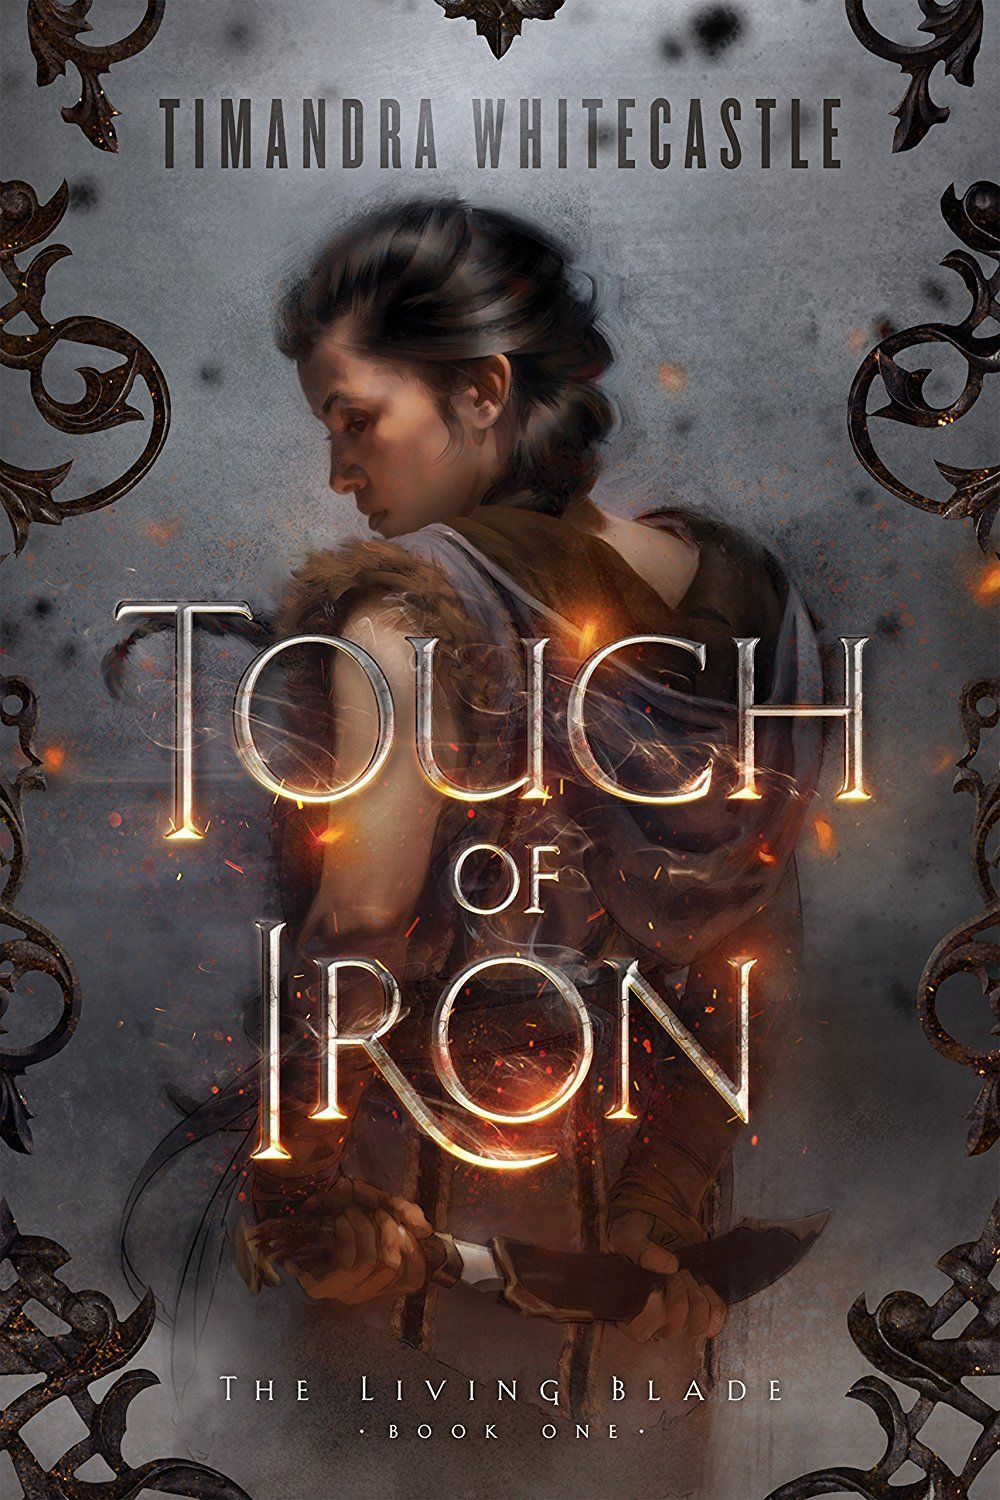 Touch of Iron by Timandra Whitecastle